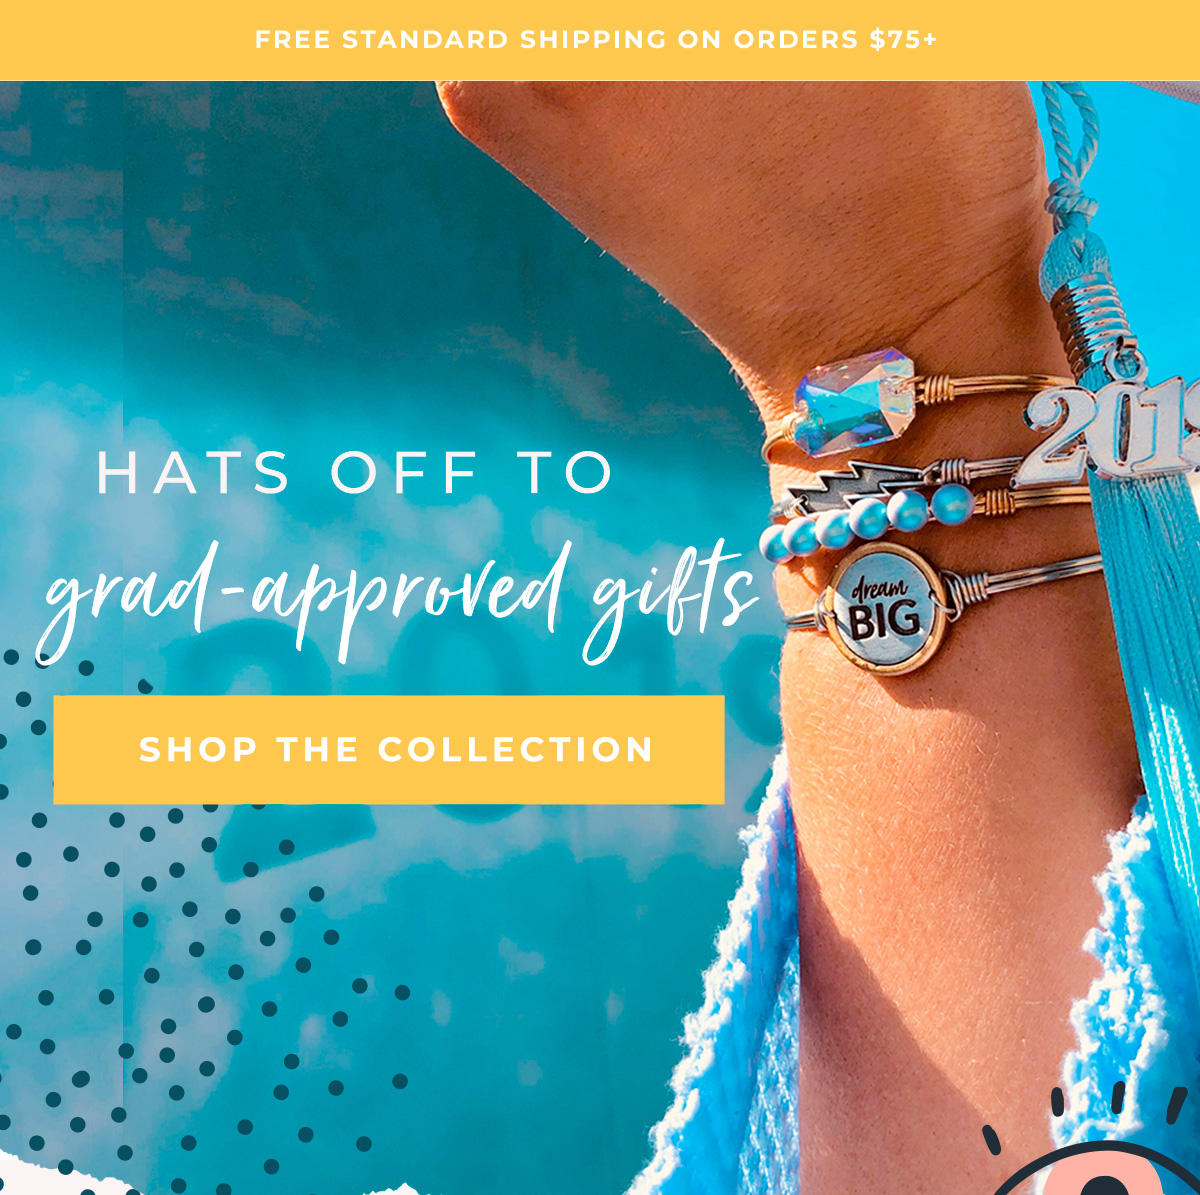 FREE STANDARD SHIPPING ON ORDERS $75+ | HATS OFF TO grad-approved gifts | SHOP THE COLLECTION